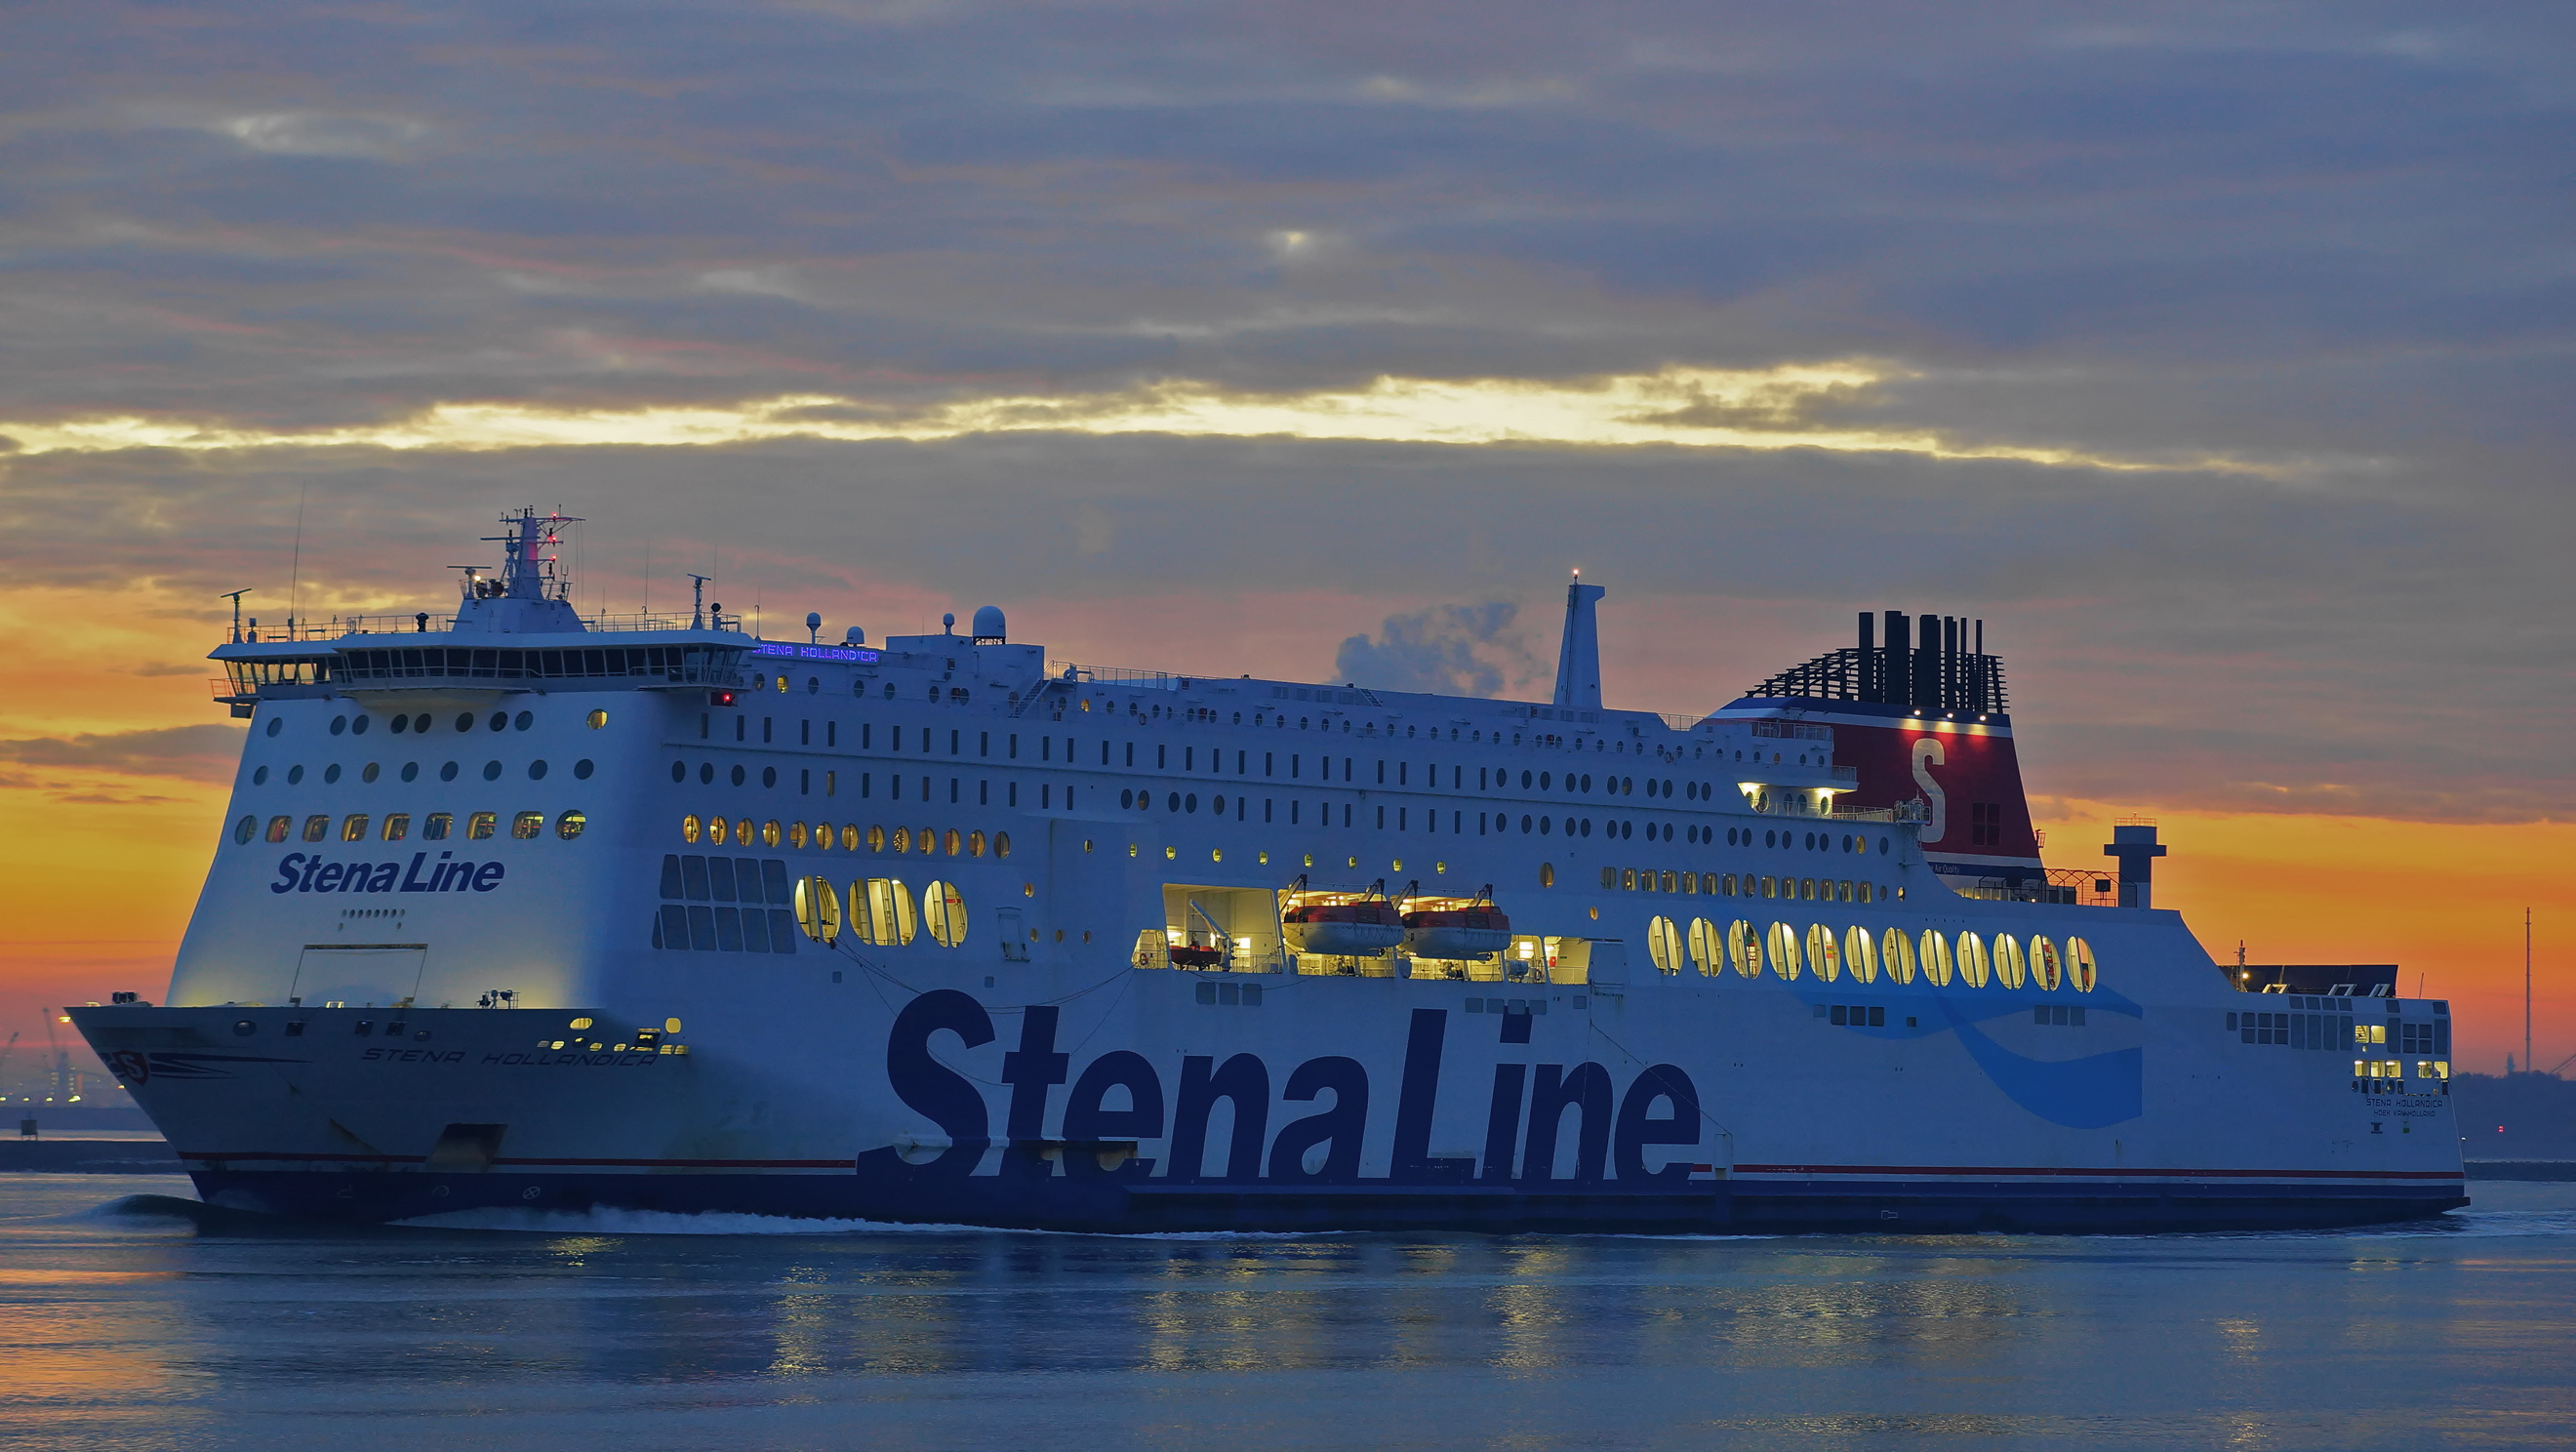 File:Stena Hollandica at Nieuwe Waterweg, 14 12 2016 jpg